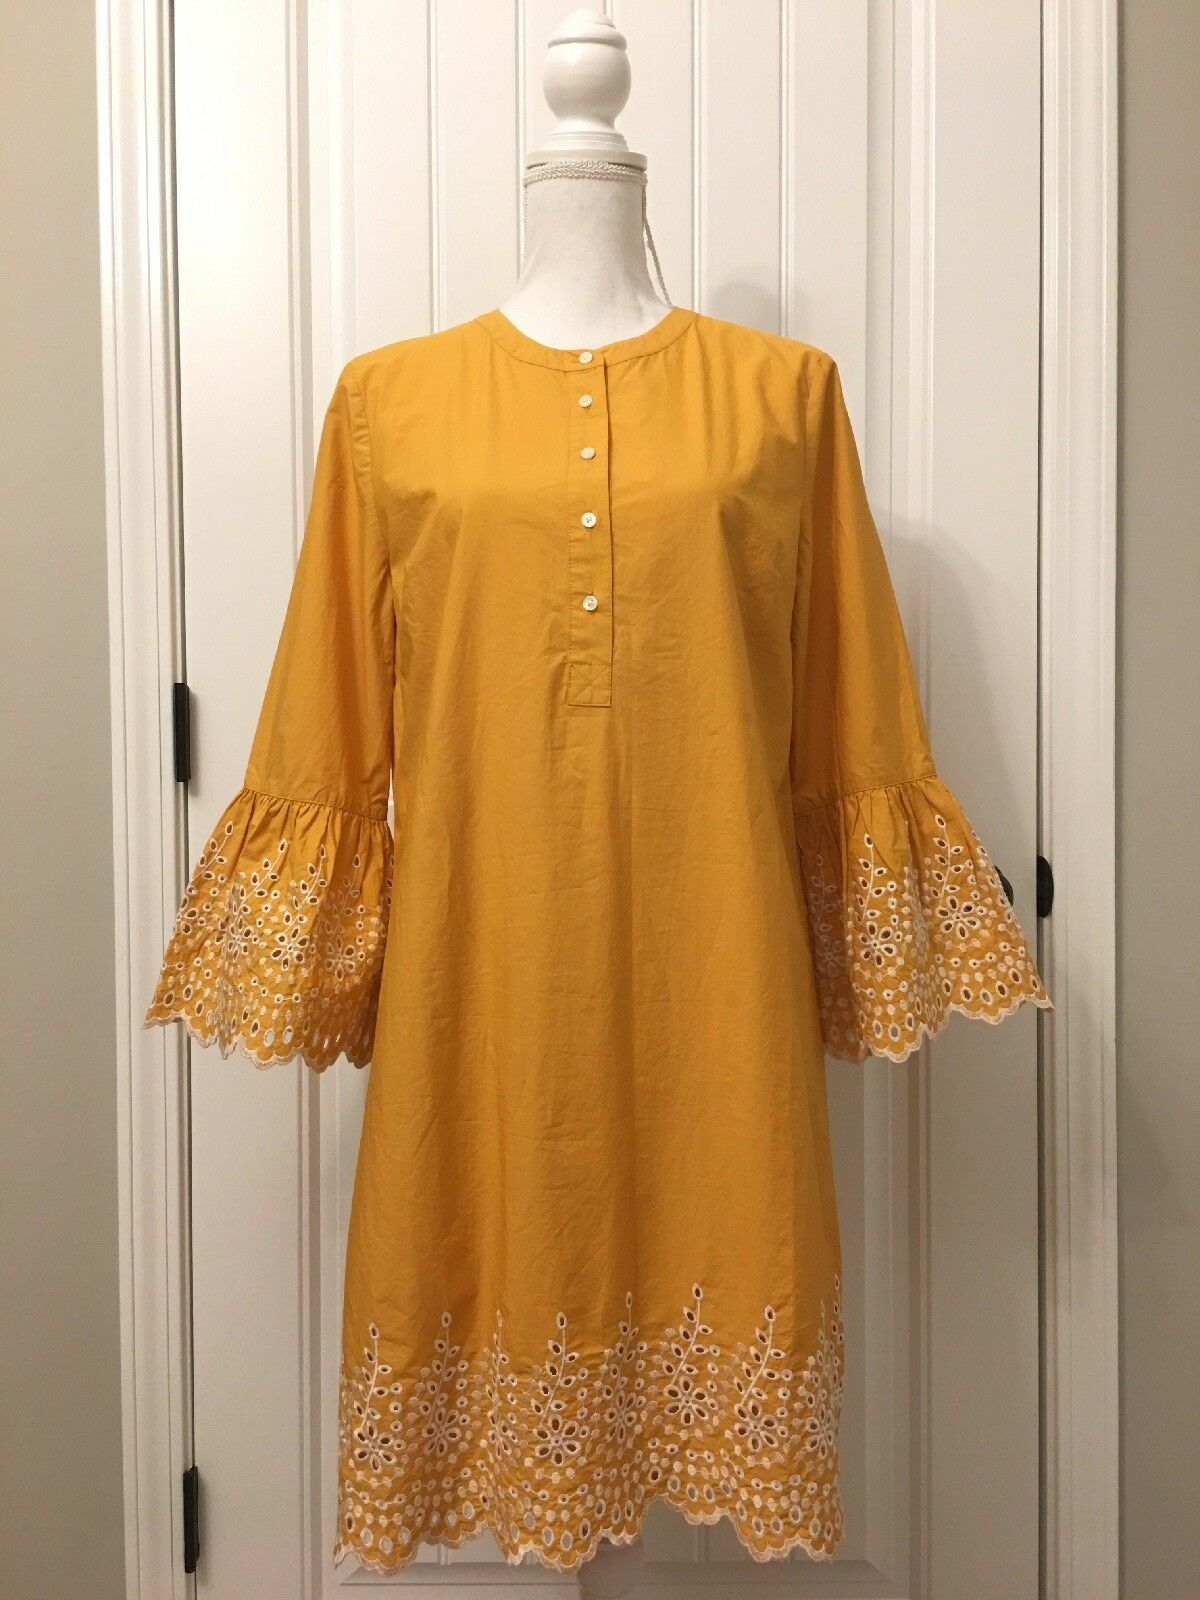 New J Crew Eyelet Bell-sleeve Dress Bronzed Orange Sz M H6978